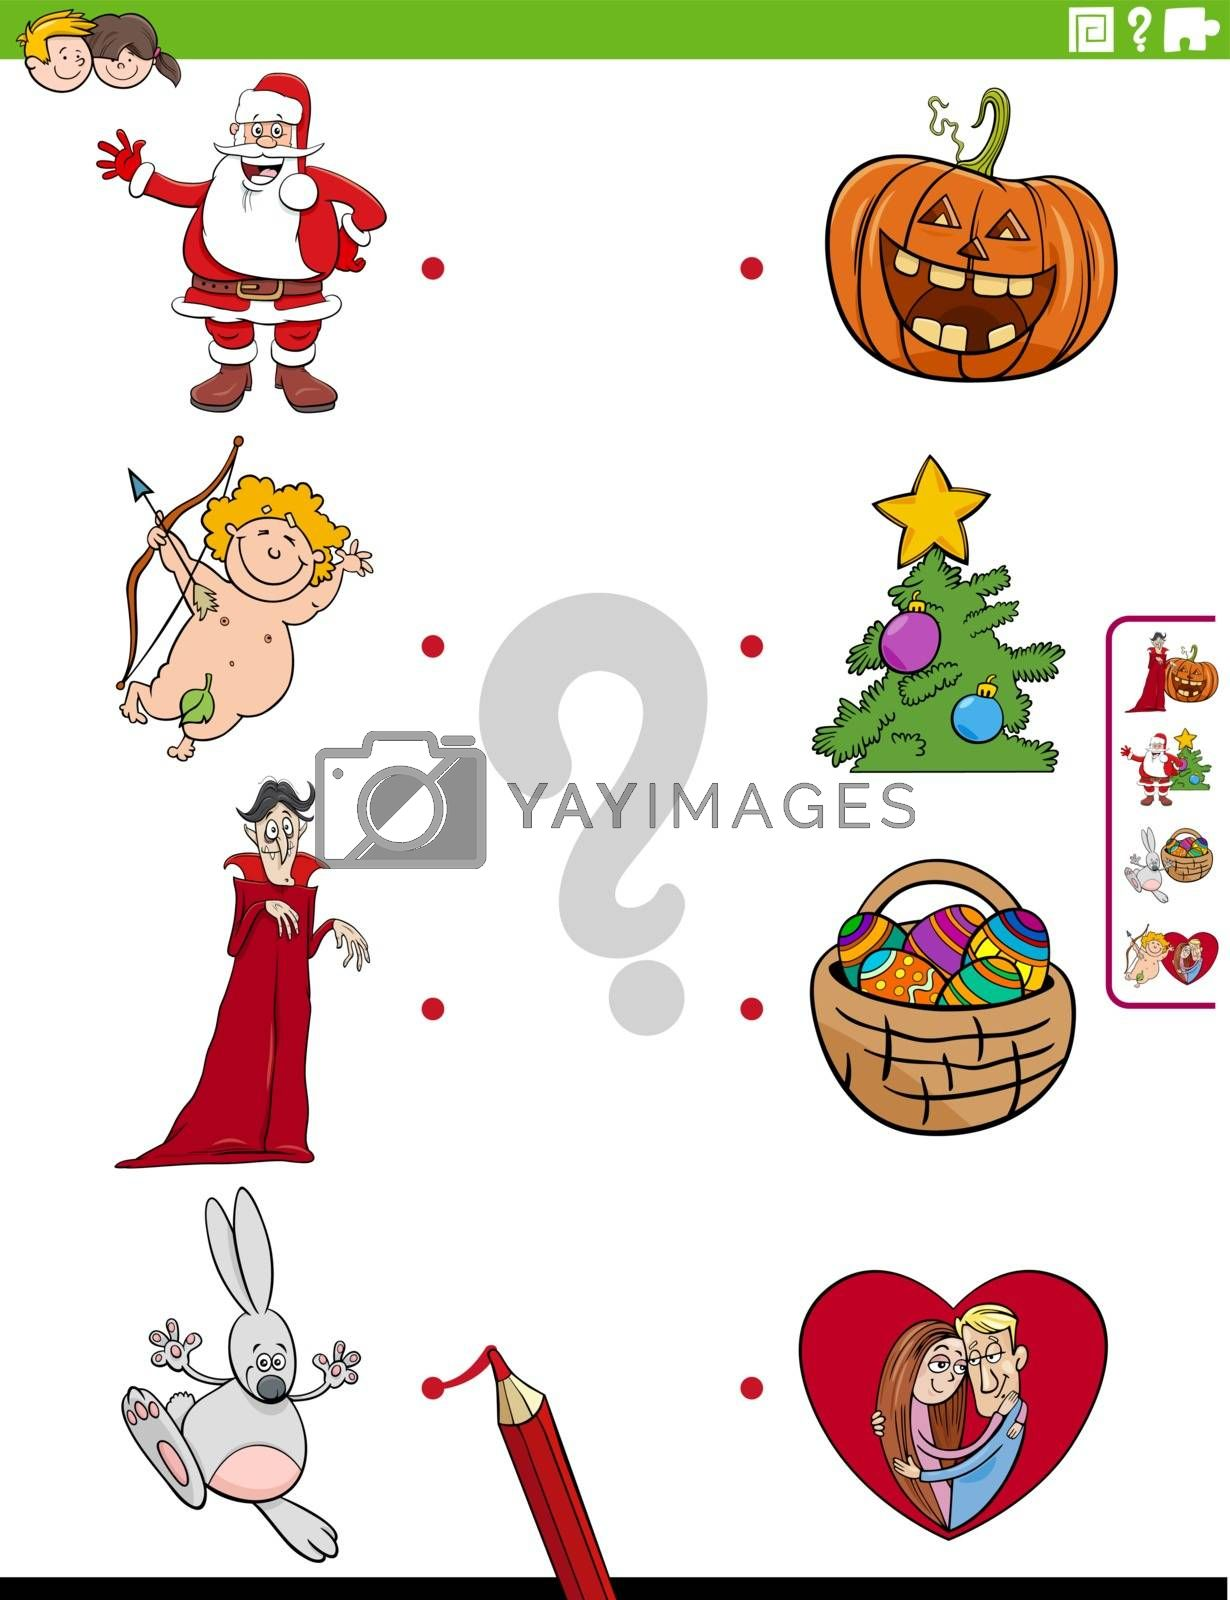 Cartoon Illustration of Educational Matching Game for Children with Holidays Characters and Symbols